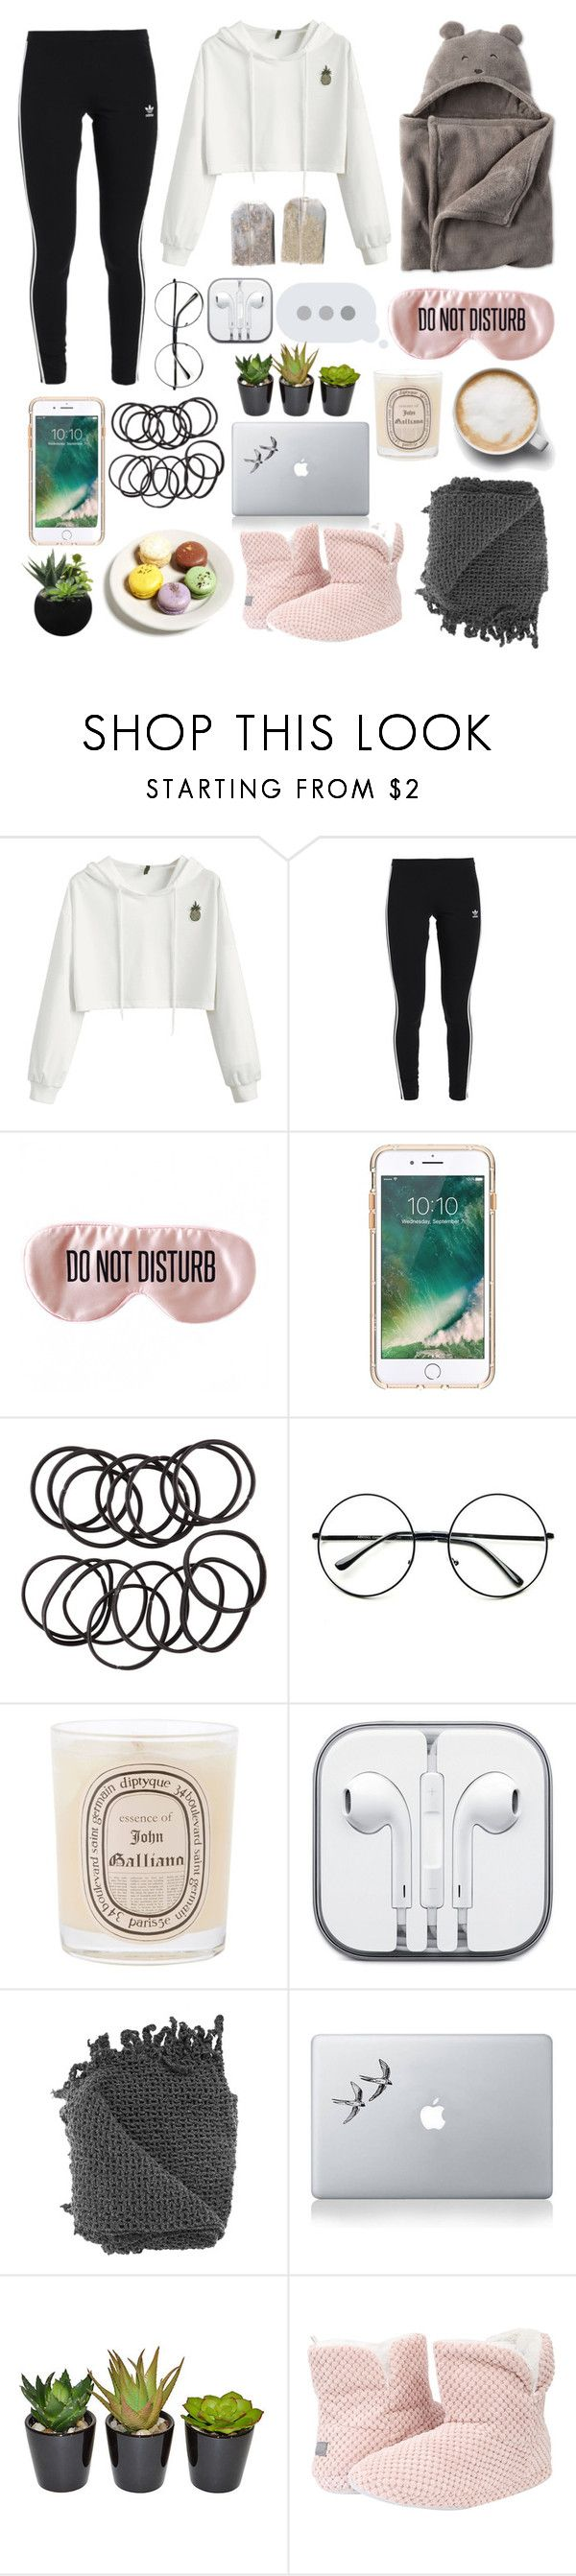 """""""Lazy Sundays"""" by meganjaned ❤ liked on Polyvore featuring adidas Originals, Carter's, BaubleBar, Caffé, Griffin, H&M, Retrò, Diptyque, Vinyl Revolution and The French Bee"""